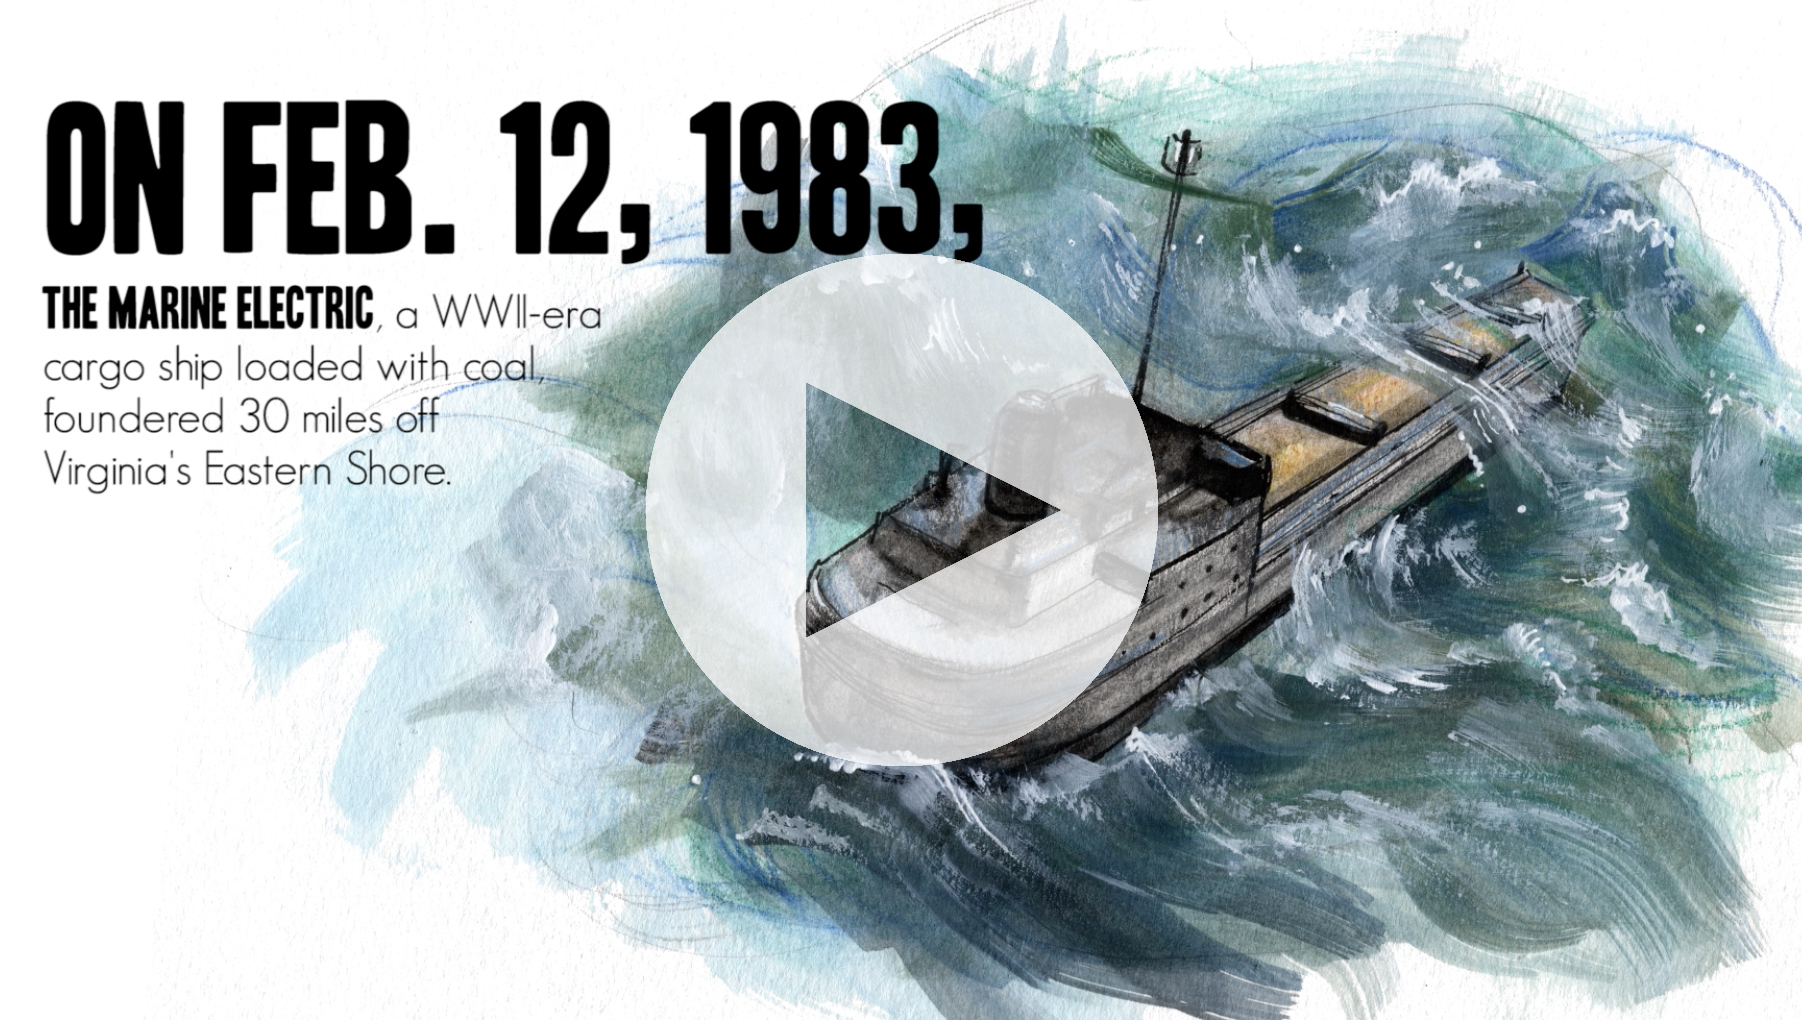 This video outlines the Marine Electric shipwreck and the incident's lasting impact on the Coast Guard.